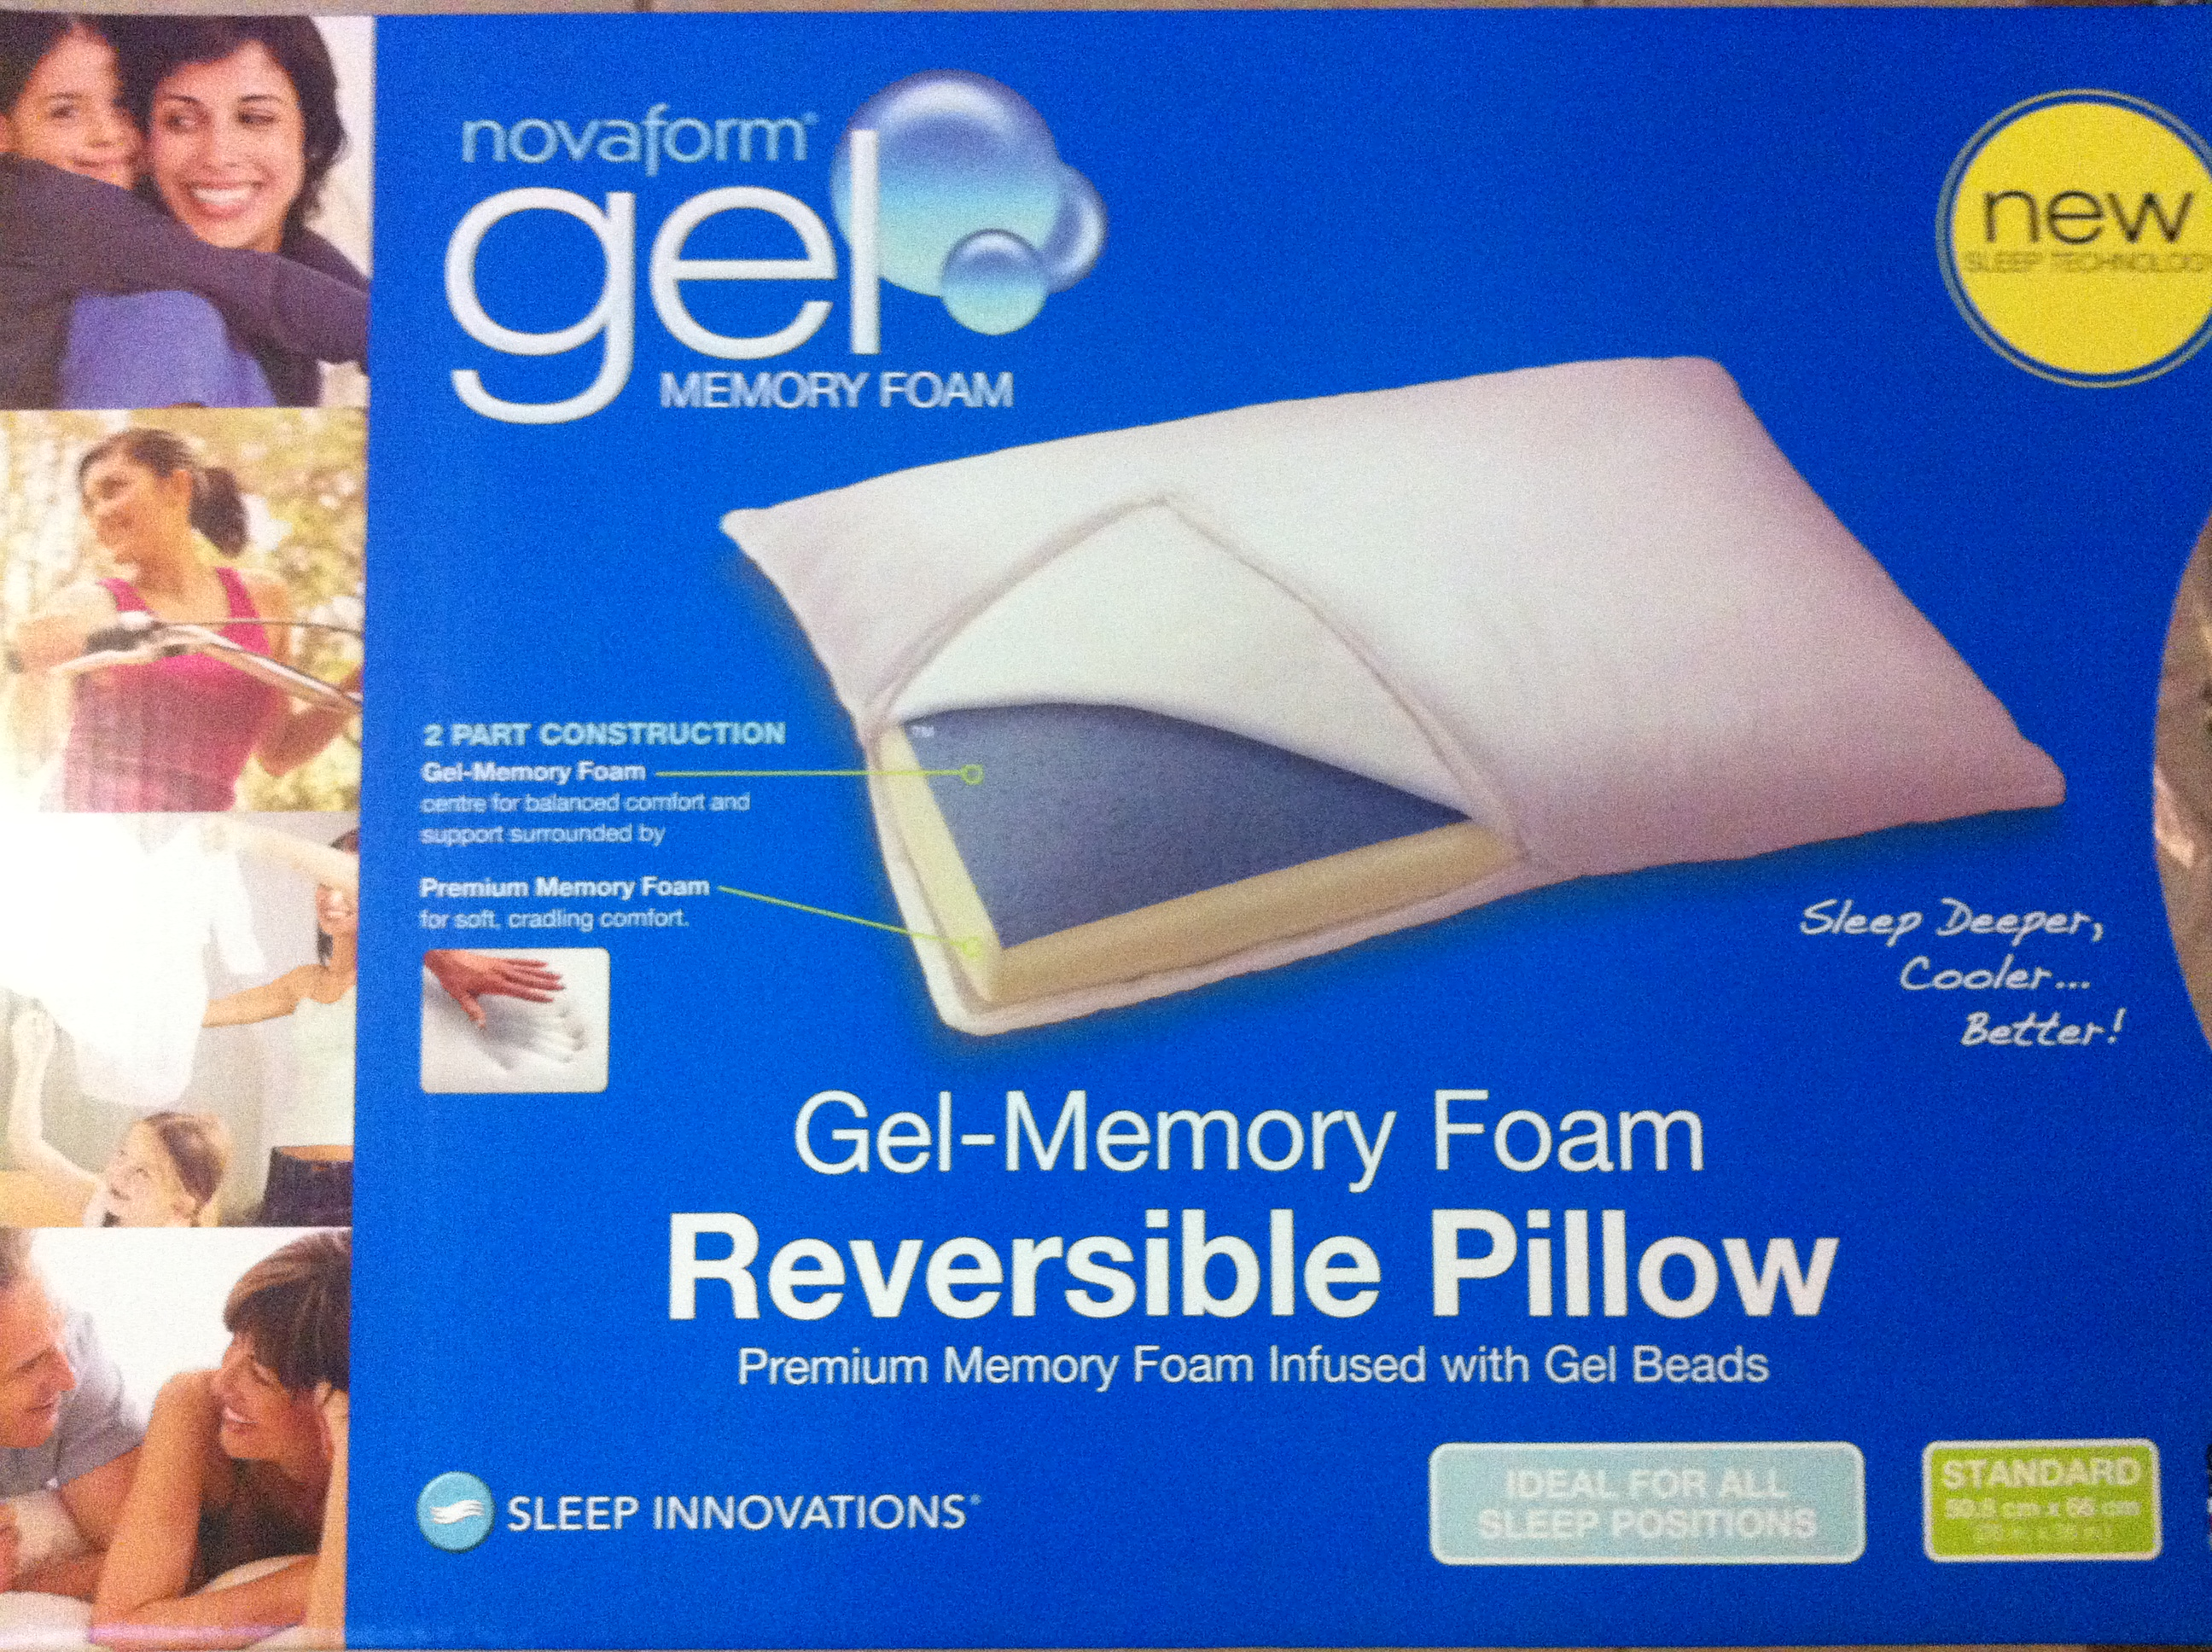 A GreatInexpensive PillowNovaform Gel Memory Foam Pillow